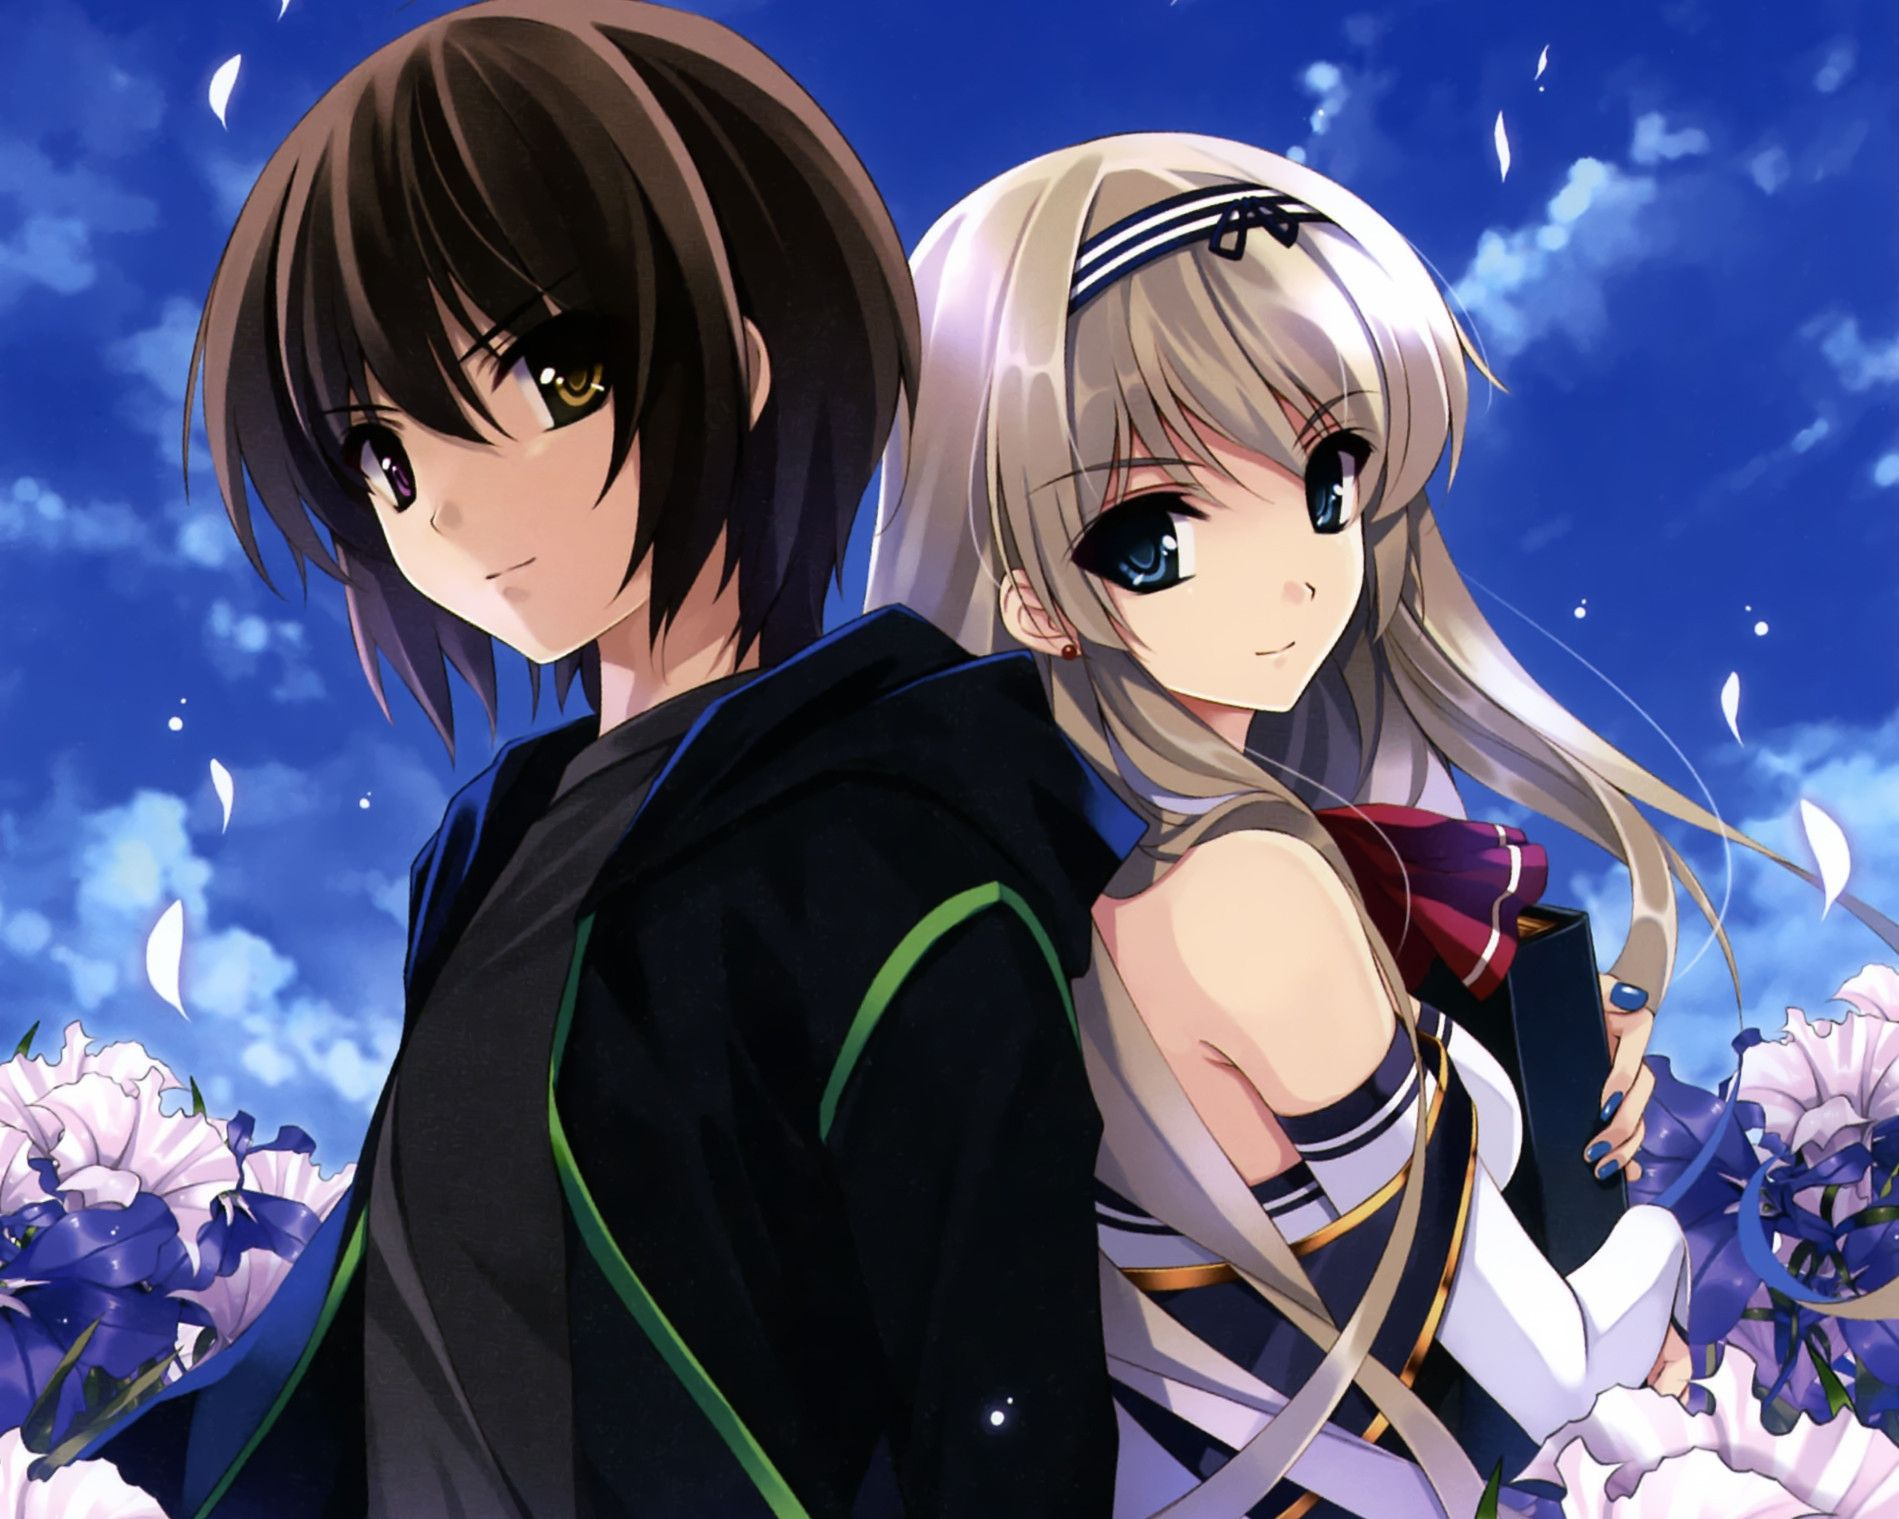 Wallpapers For Cute Anime Couples Wallpaper Desktop 1899x1519